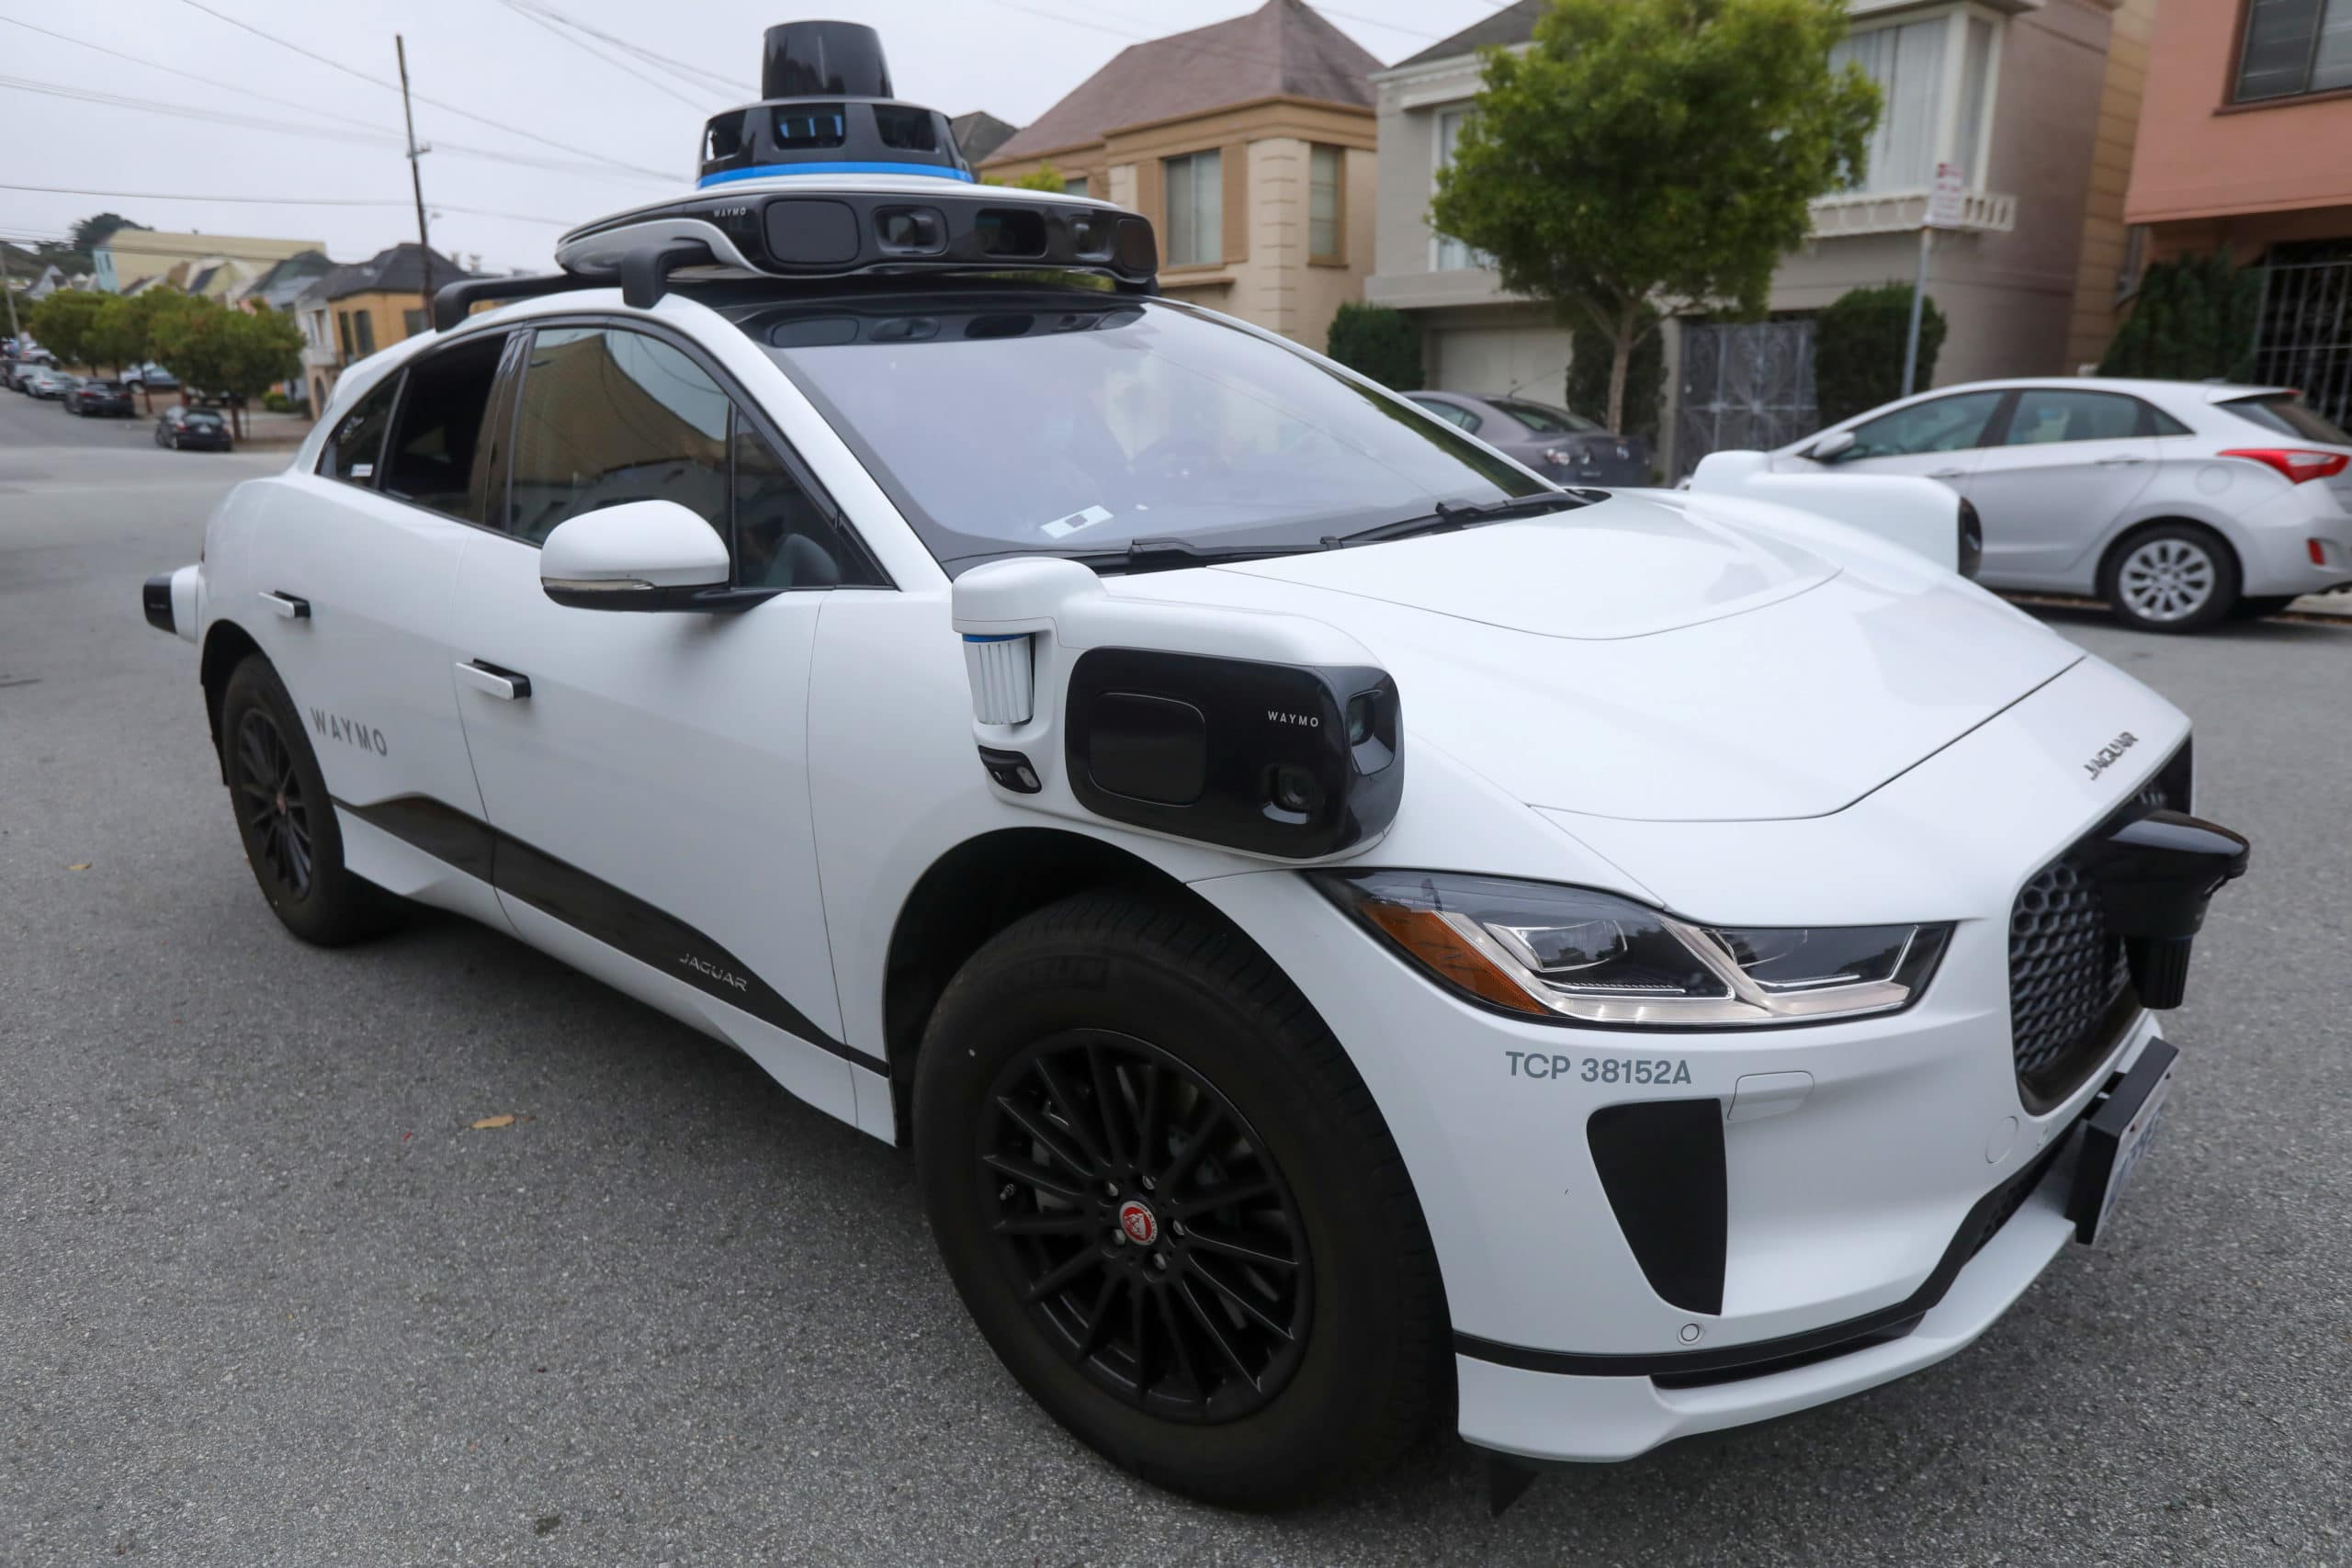 Waymo will stop selling its self-driving LiDAR sensors to other companies